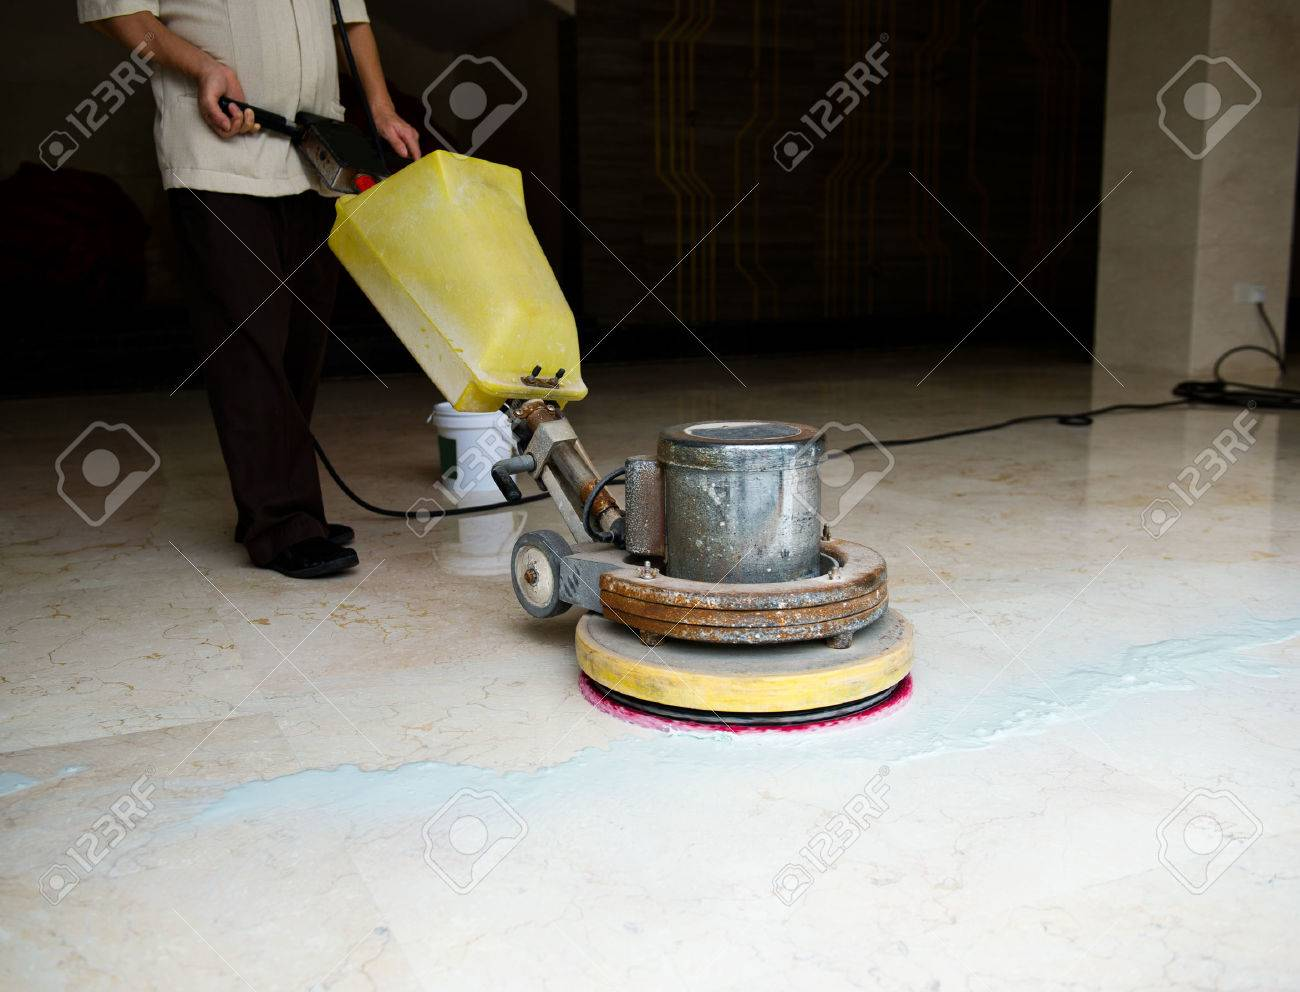 People cleaning floor with machine. Stock Photo - 33783855